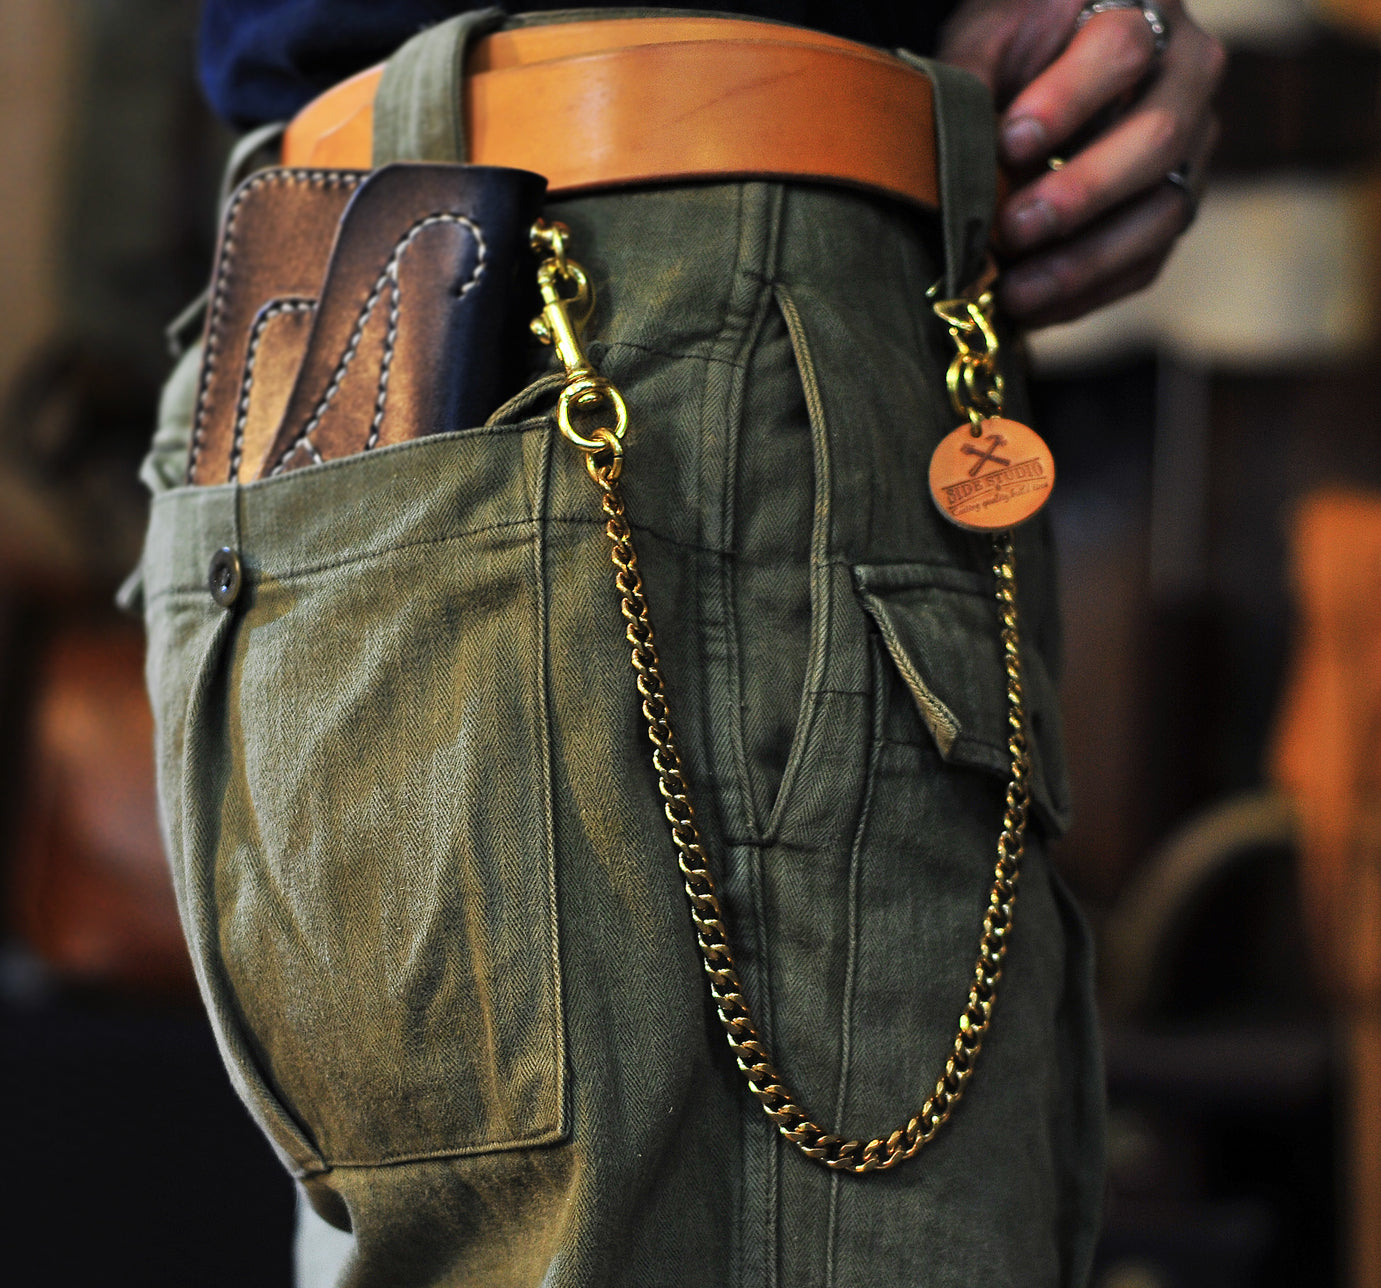 THe Second way to wear wallet chain